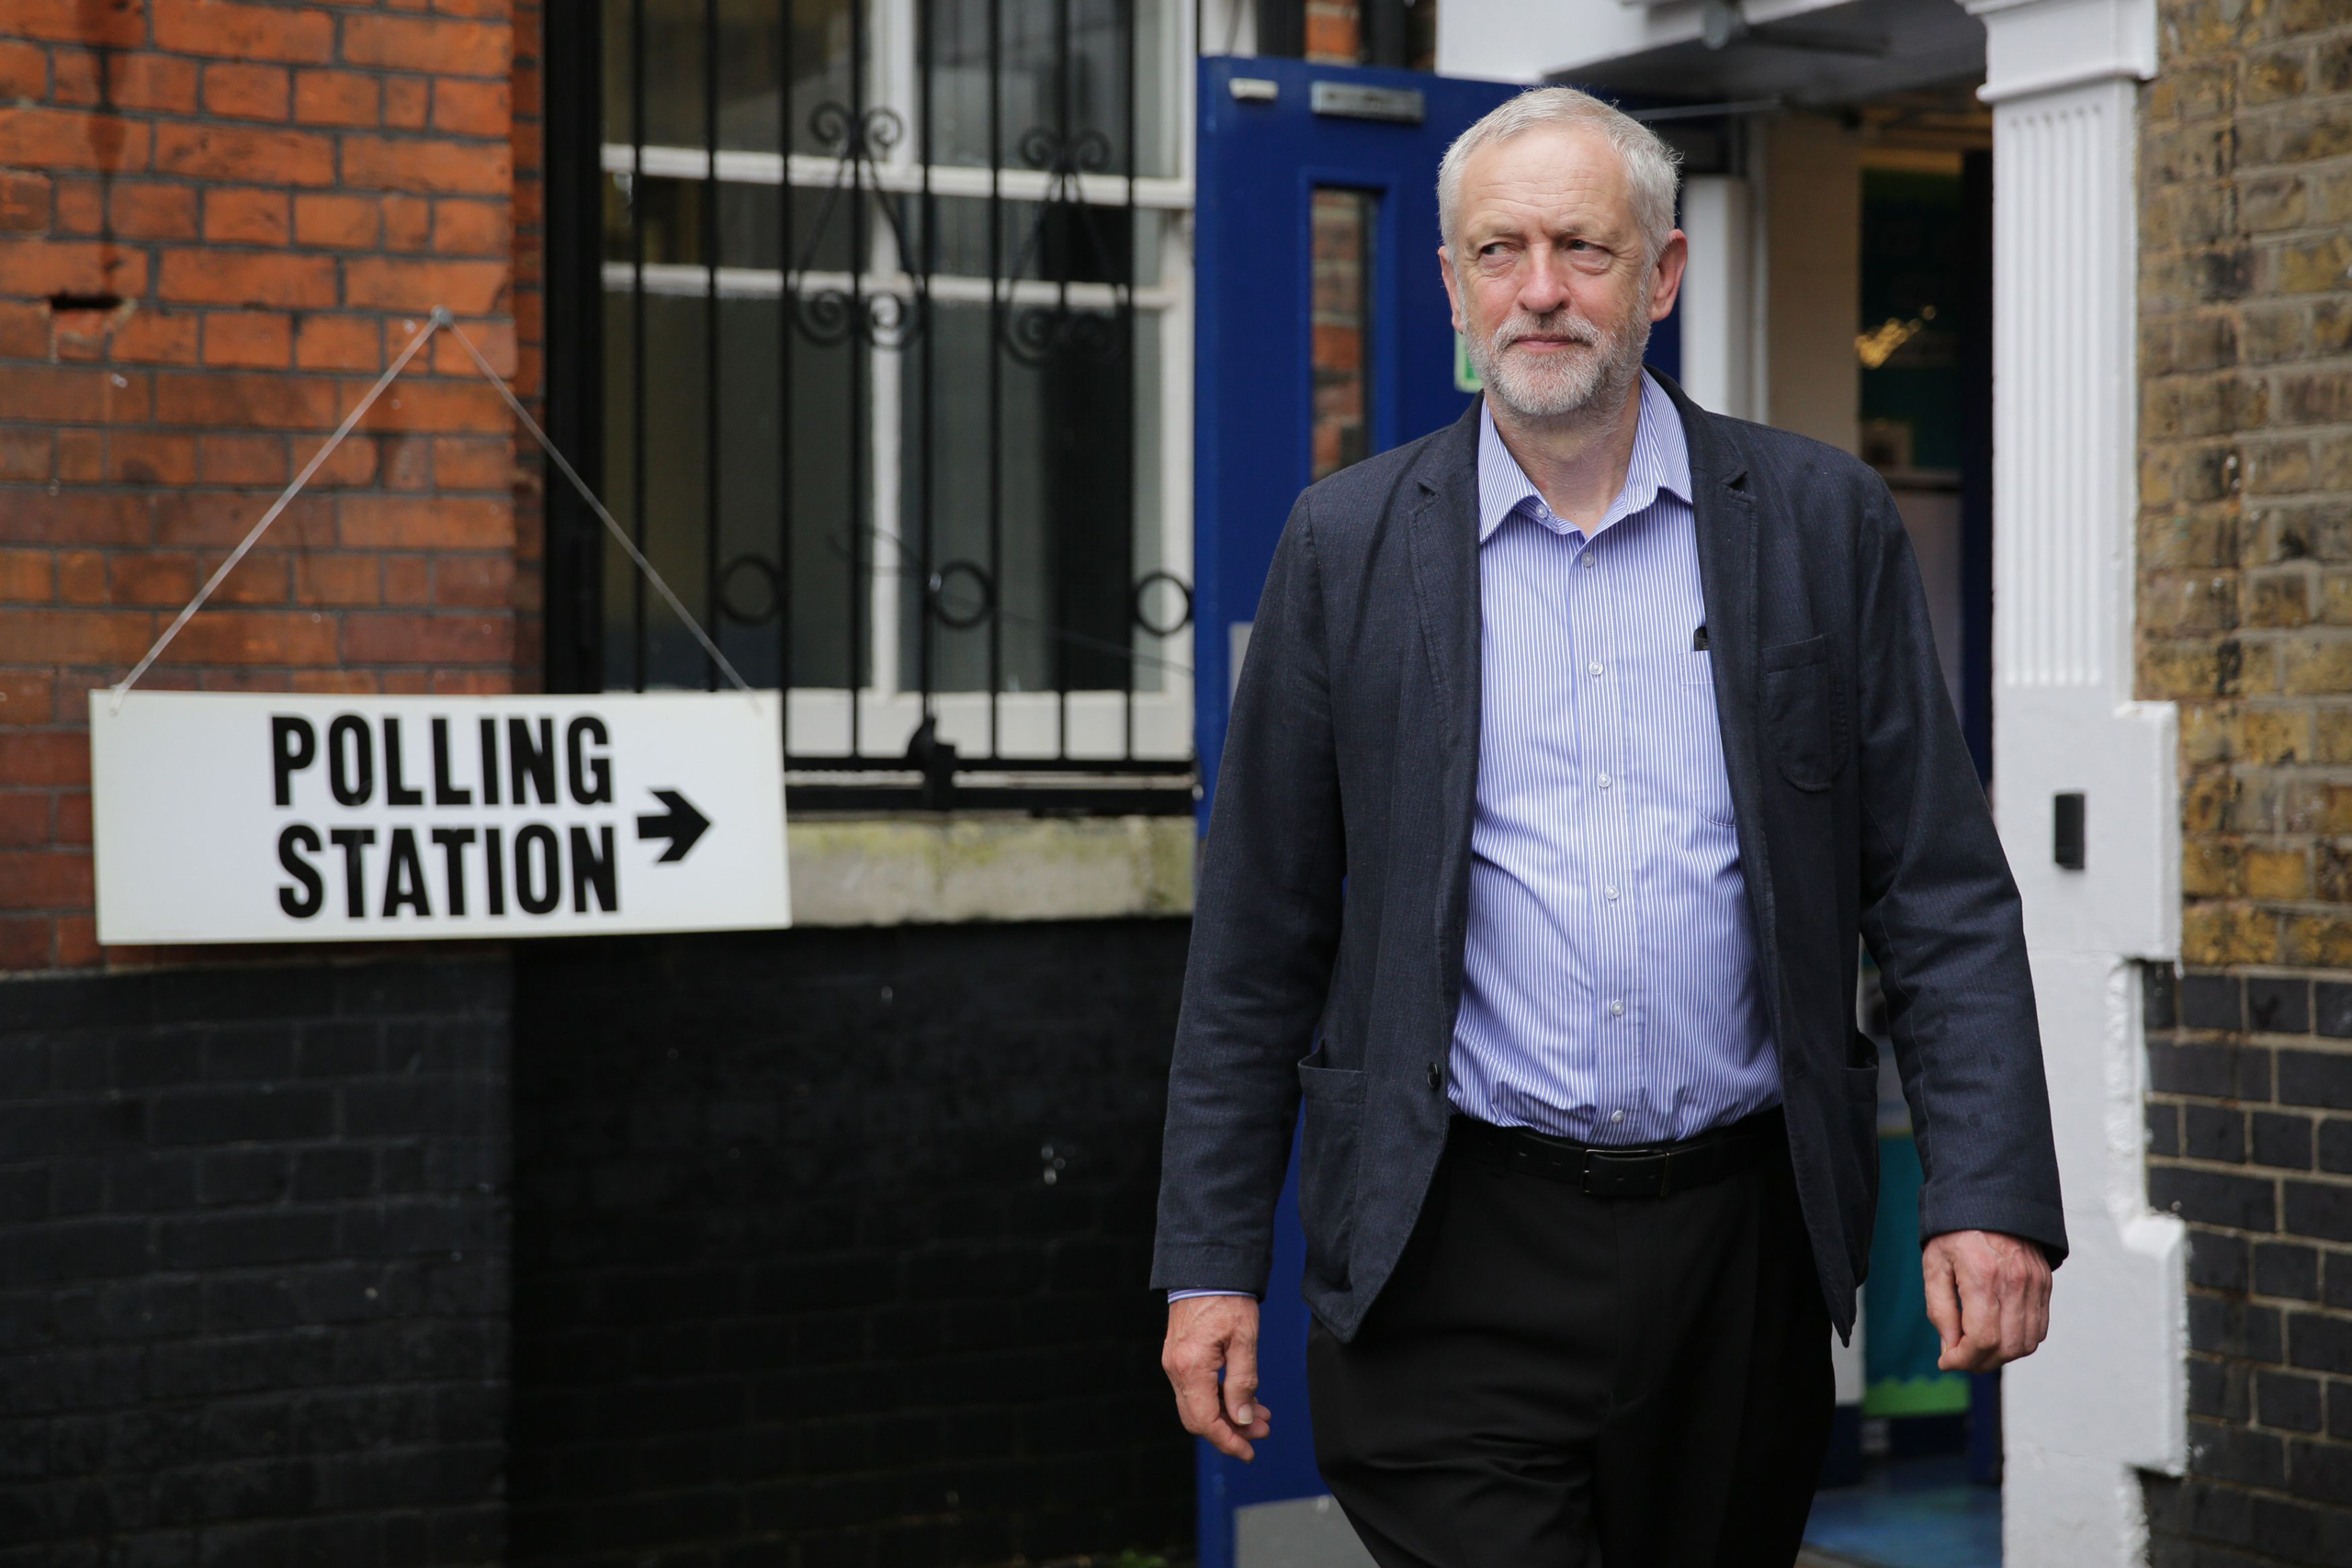 Labour Party leader Jeremy Corbyn leaves after casting his vote at a polling station in London on June 23, 2016